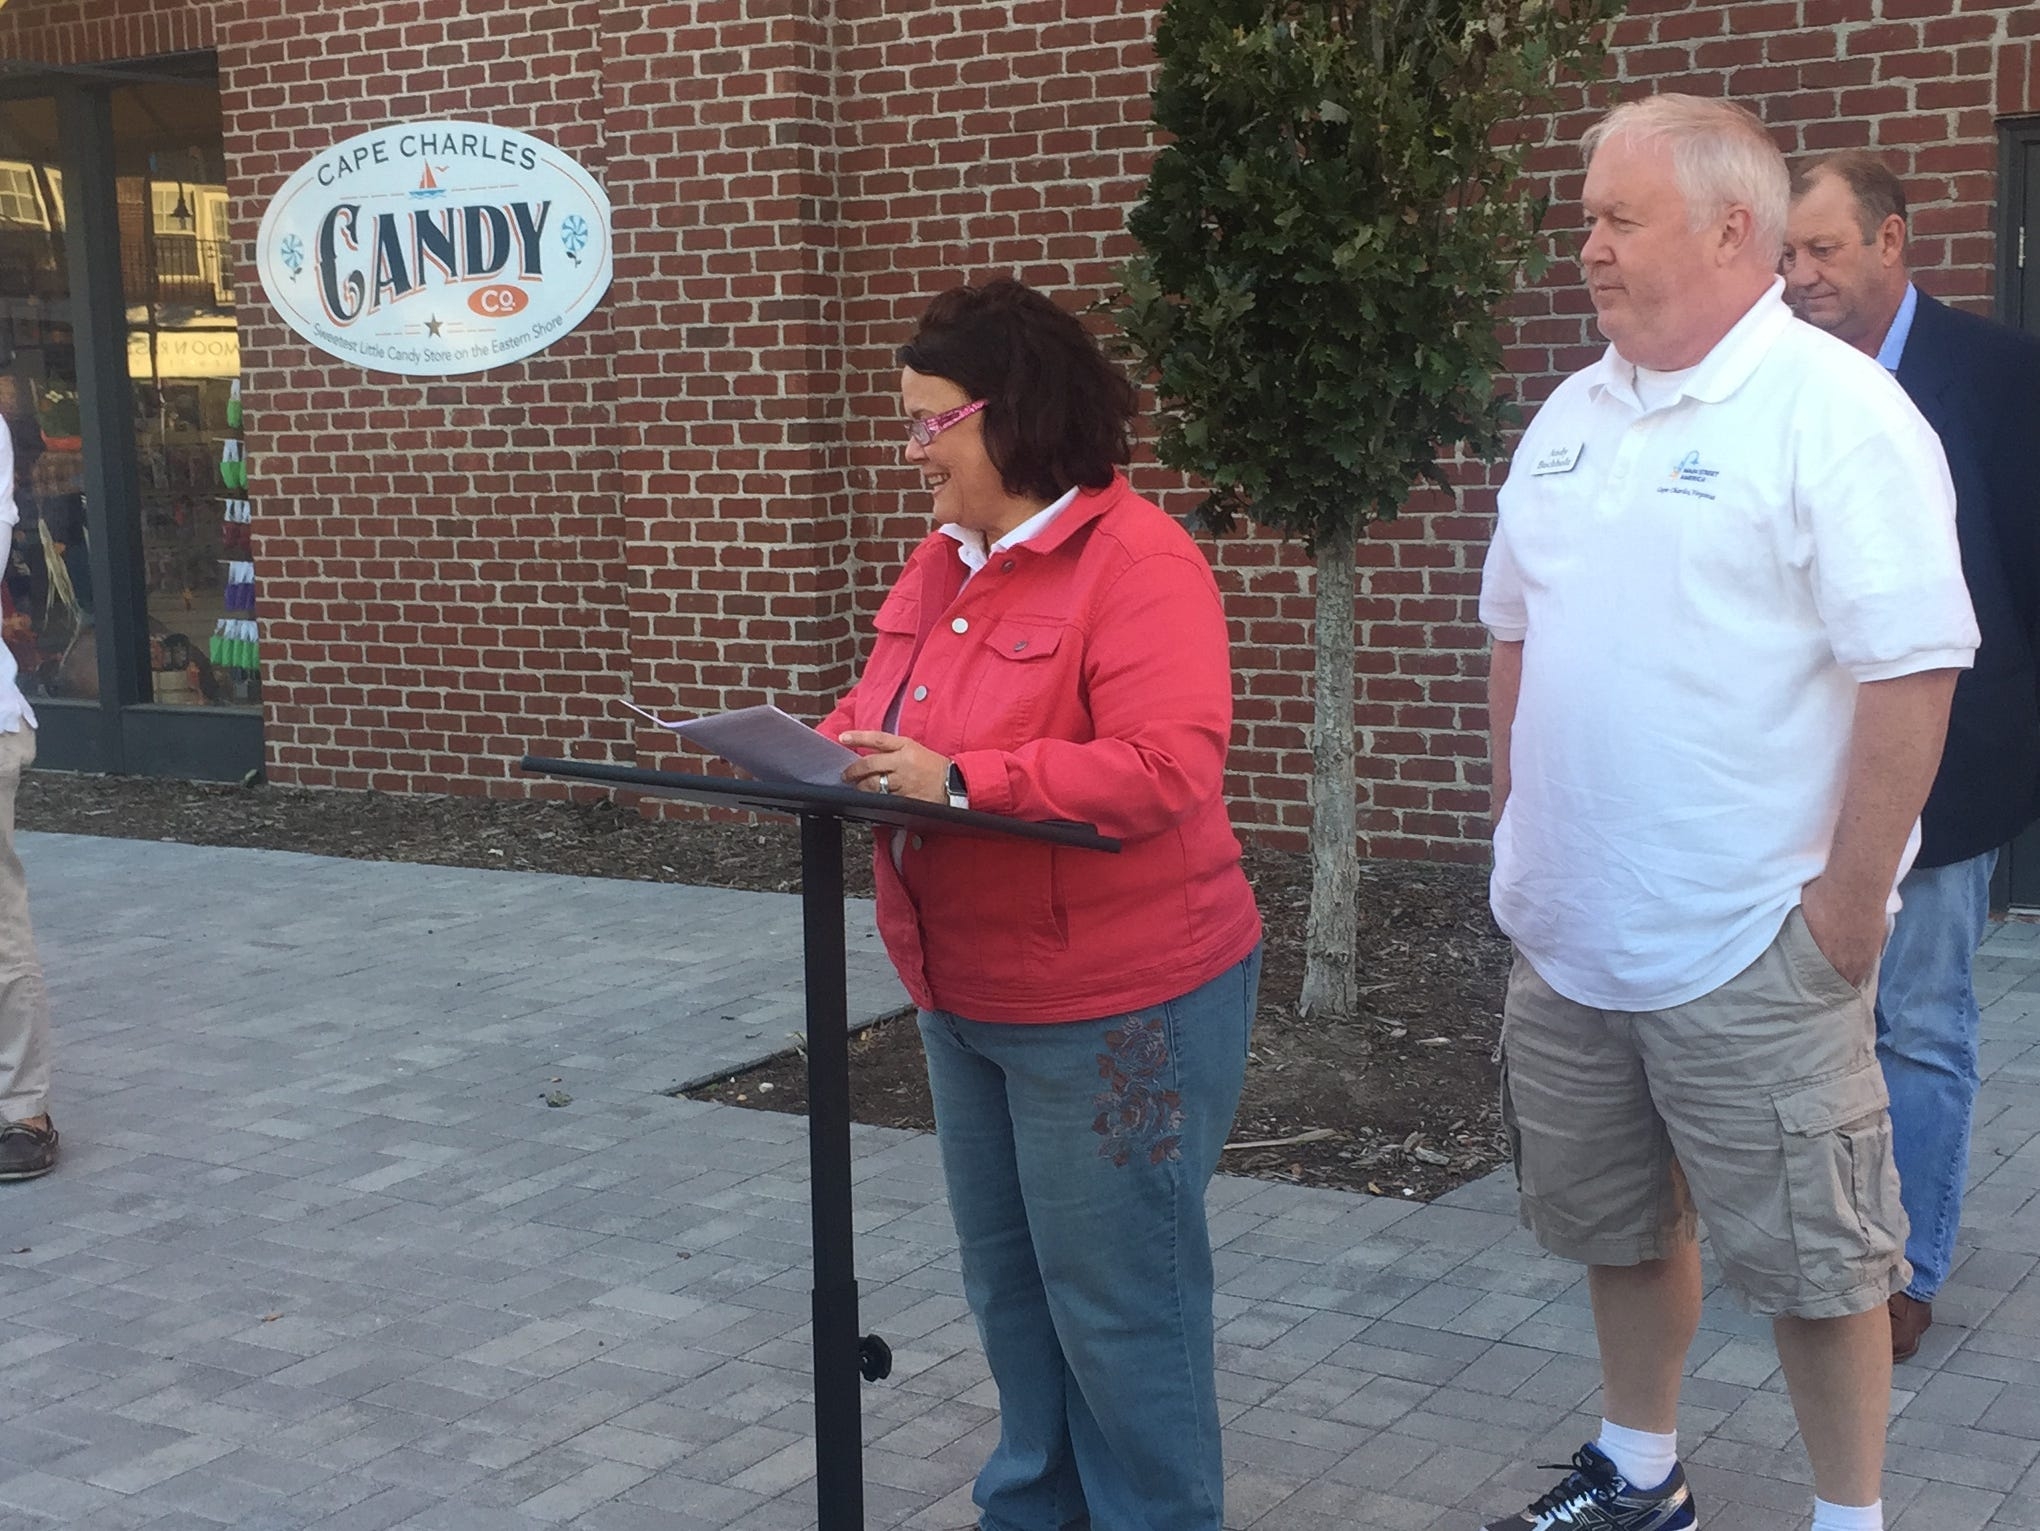 Councilwoman Tammy Holloway speaks during a ceremony on Friday, Oct. 19, 2018 to unveil a new brand for the town of Cape Charles, Virginia.